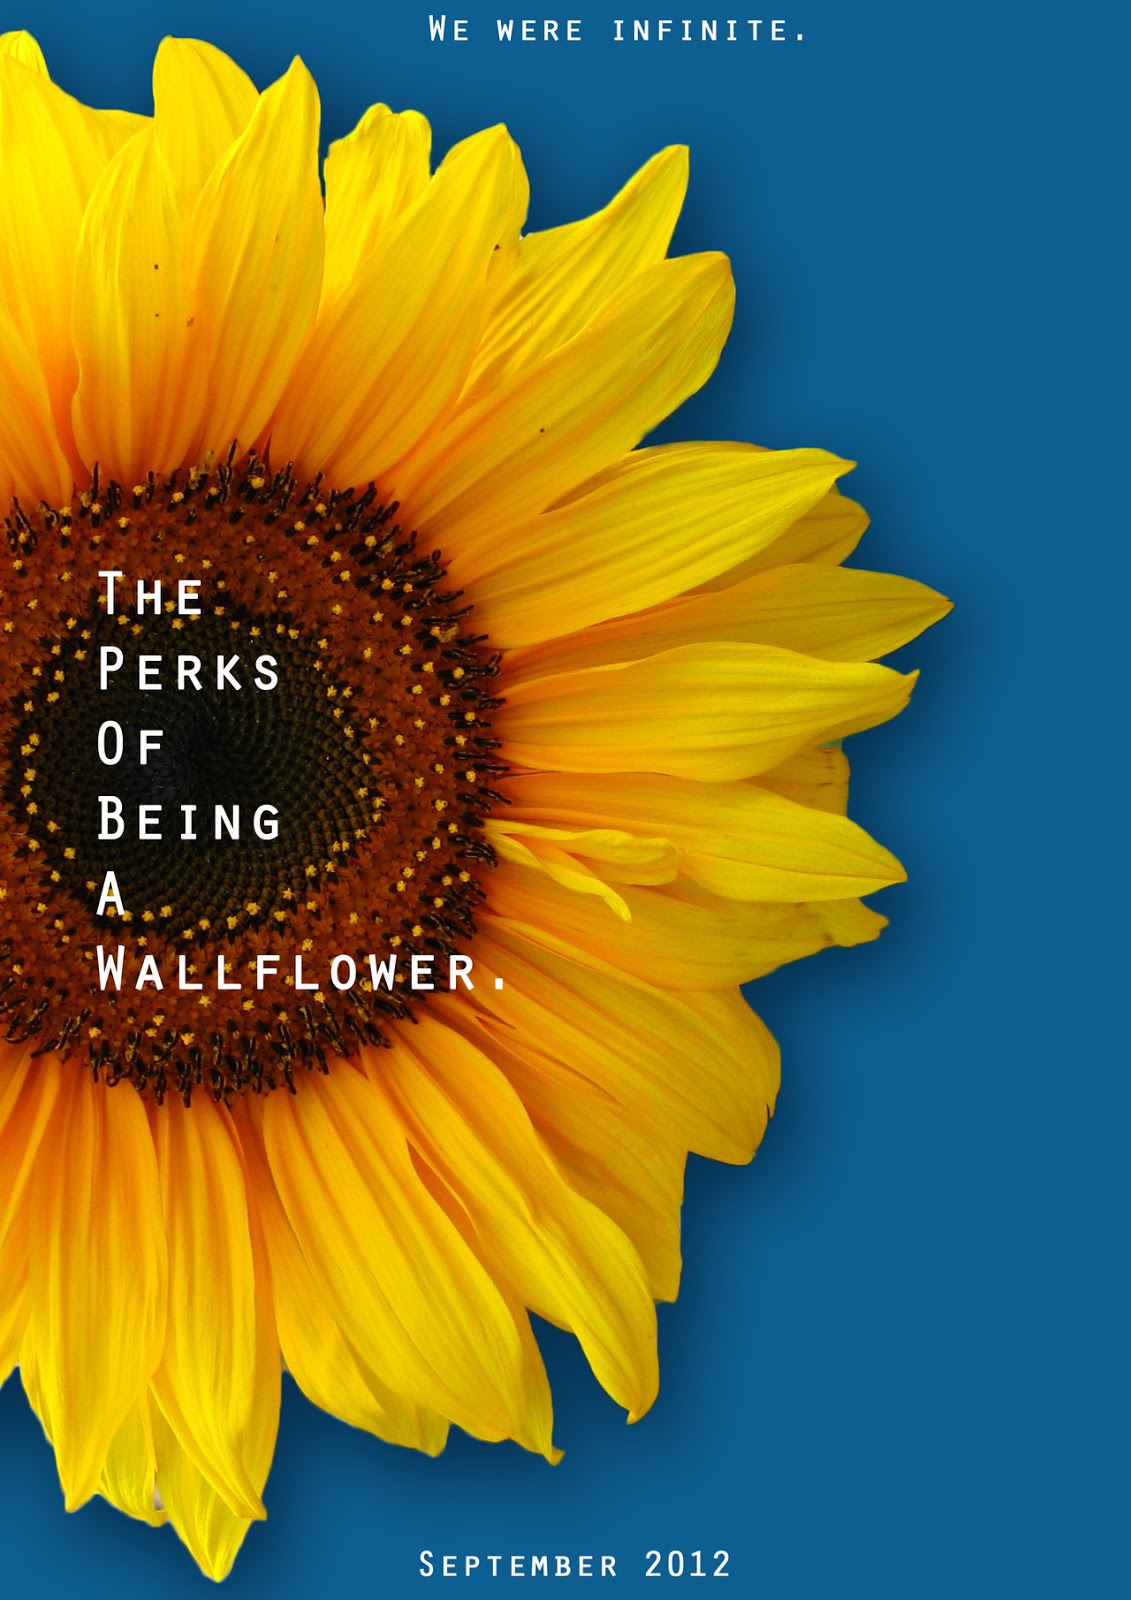 perks of being a wallflower deconstruction Our film opening generally conforms to the conventions of a slasher film opening perks of being a wallflower opening sequence deconstruction i deconstructed the opening sequence of perks of being a wallflower and.